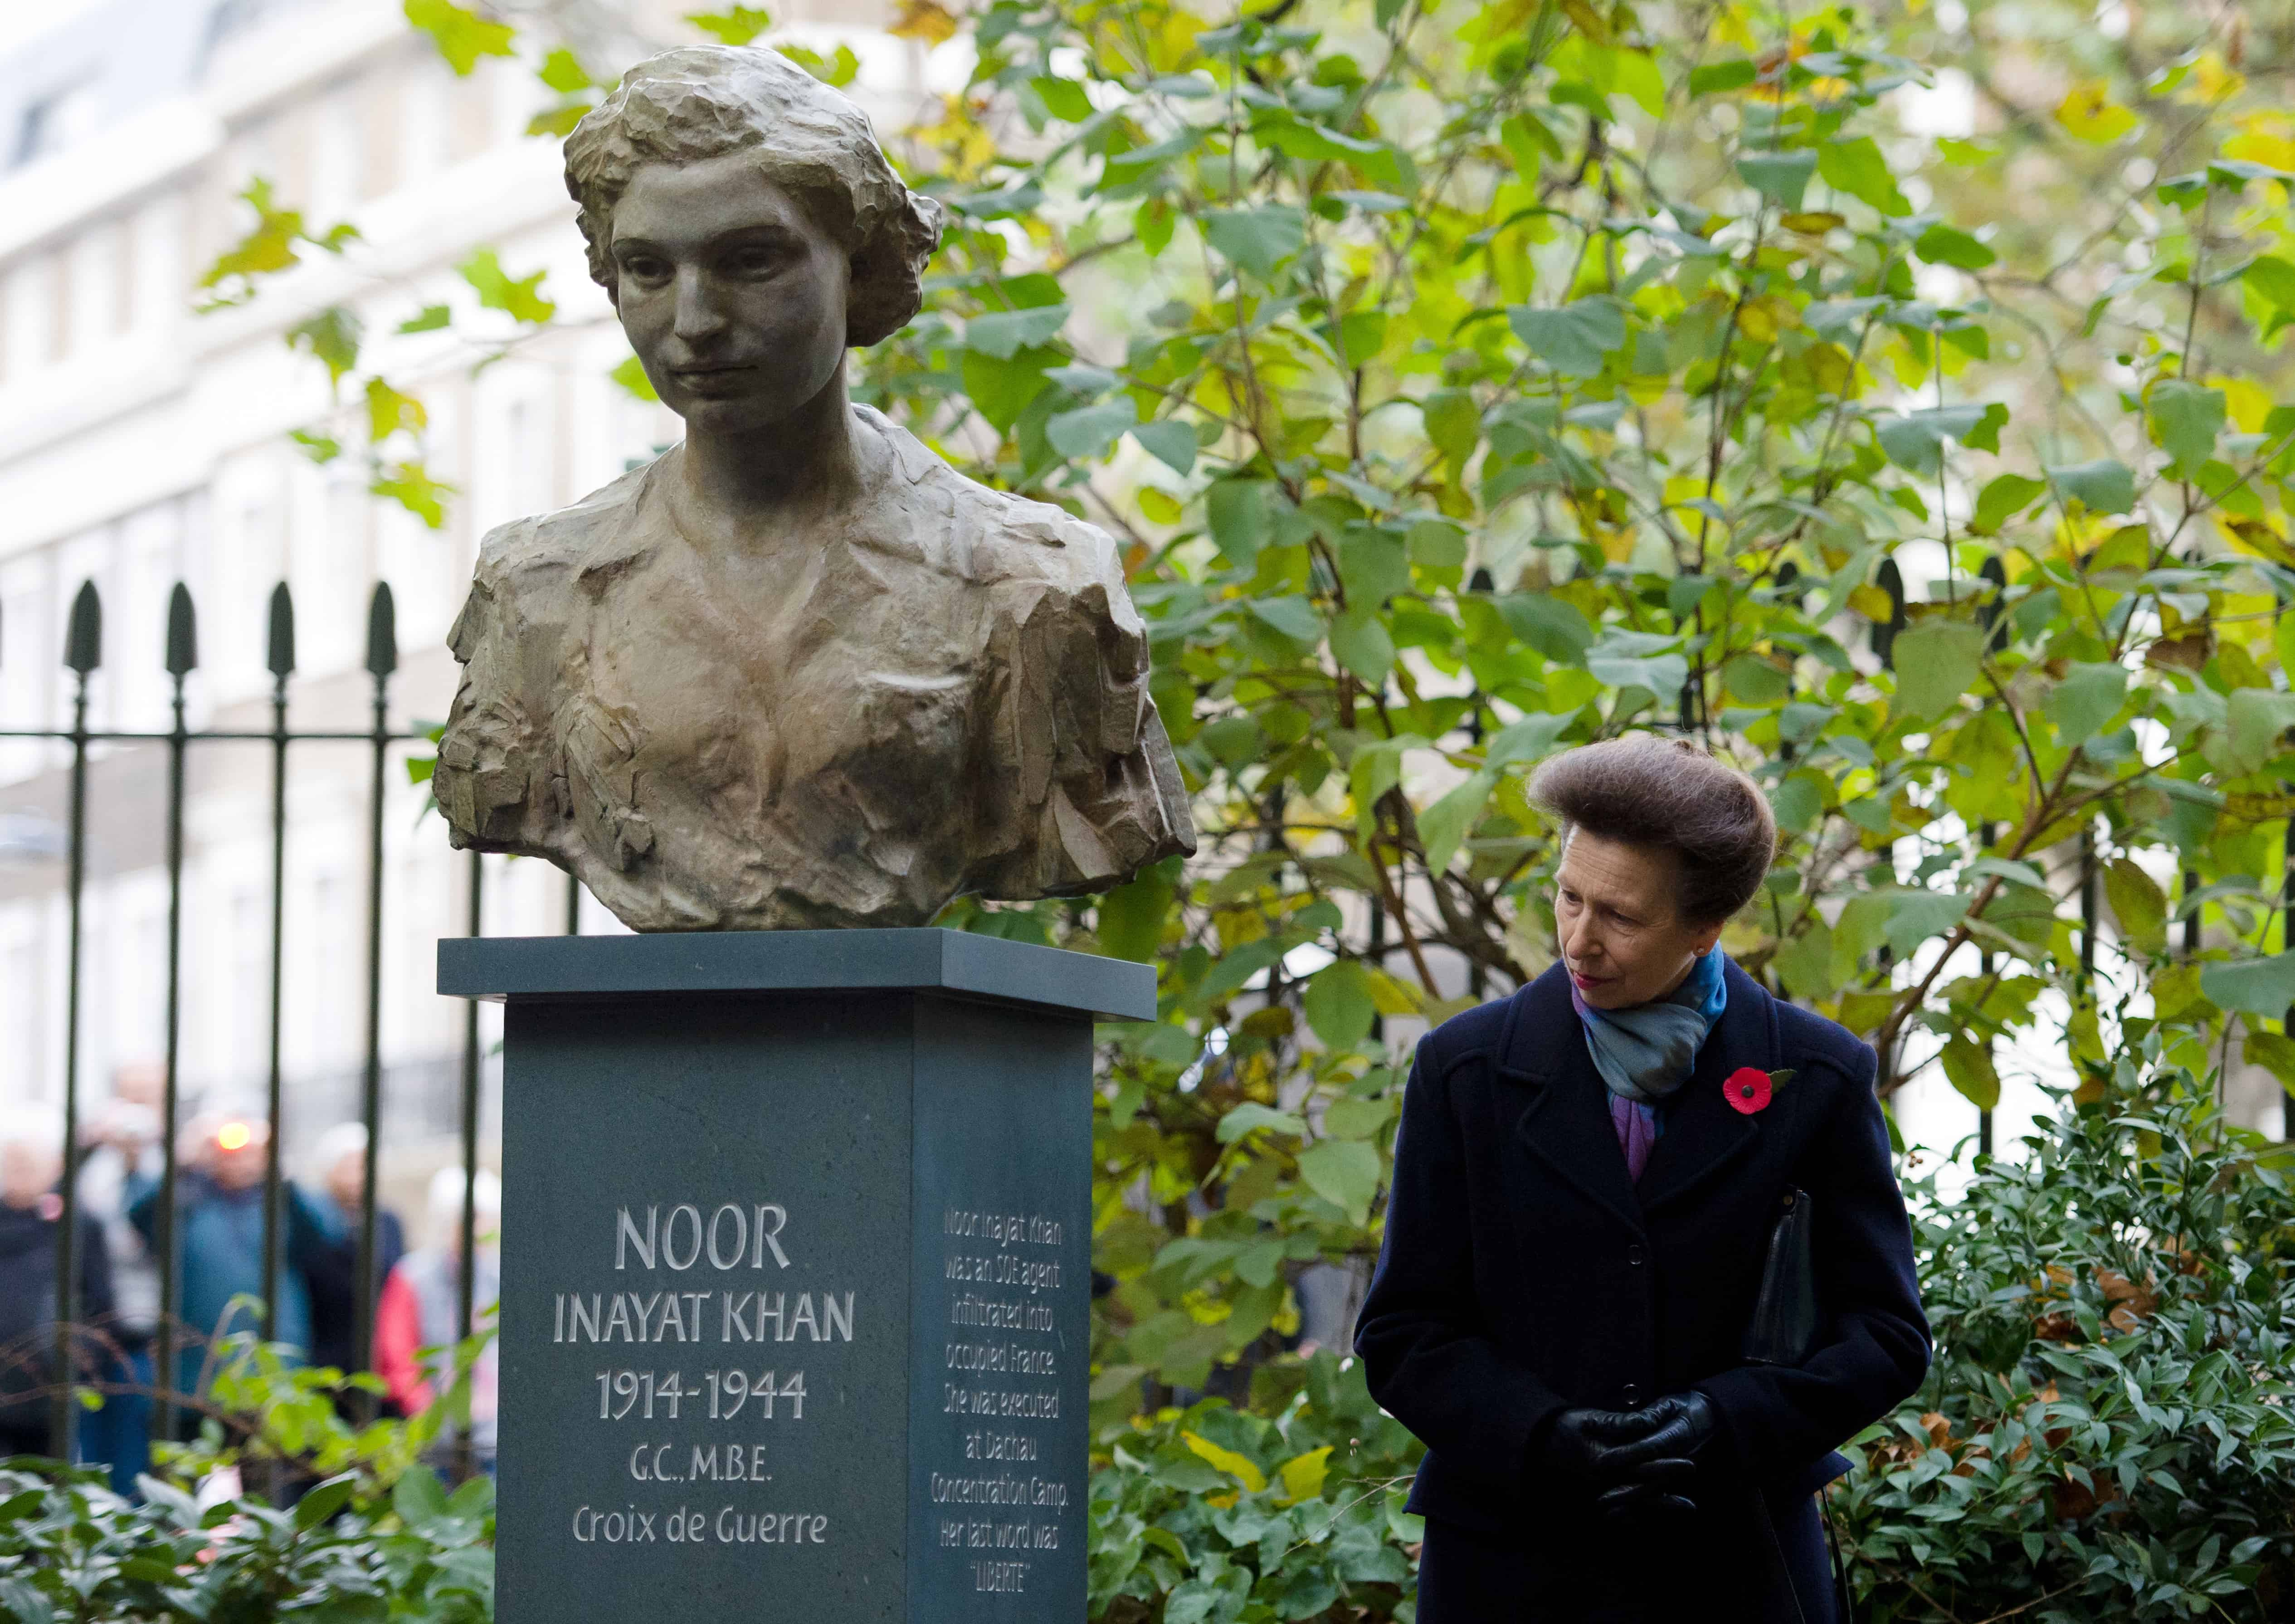 Britain's Princess Anne looks at a sculpture of India's Noor Inayat Khan after an unveiling ceremony in Memorial bust of Inayat Khan in Gordon Square Gardens, London, on November 8, 2012. (LEON NEAL/AFP/Getty Images)